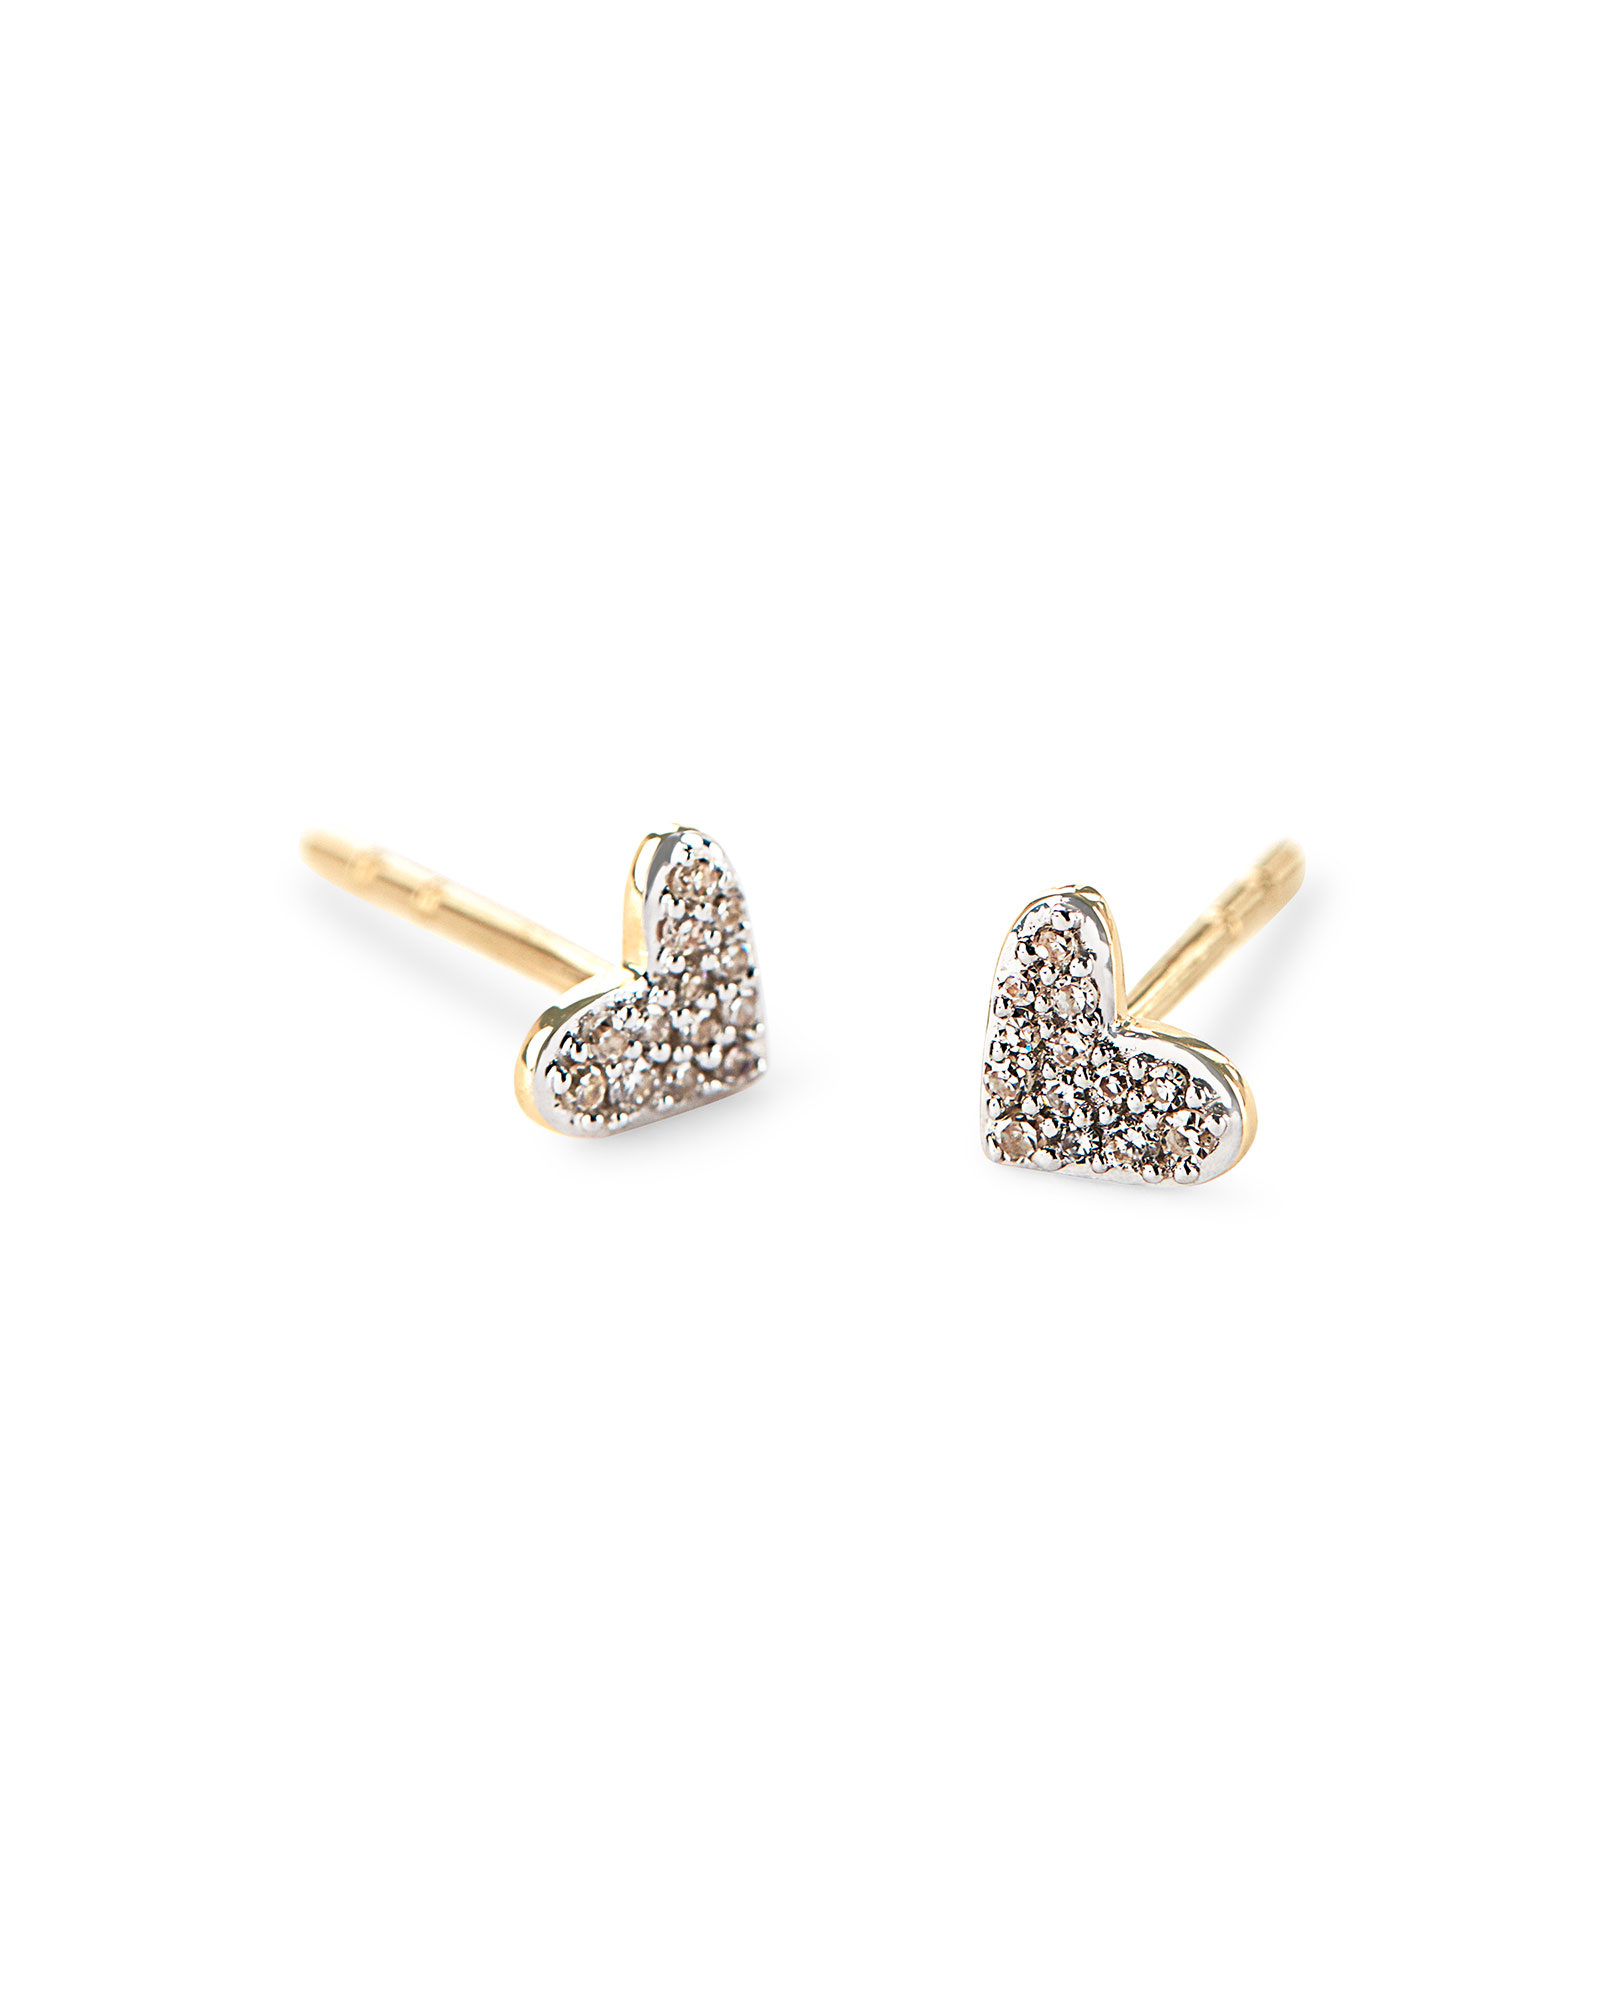 Heart 14k Yellow Gold Stud Earrings in White Diamonds